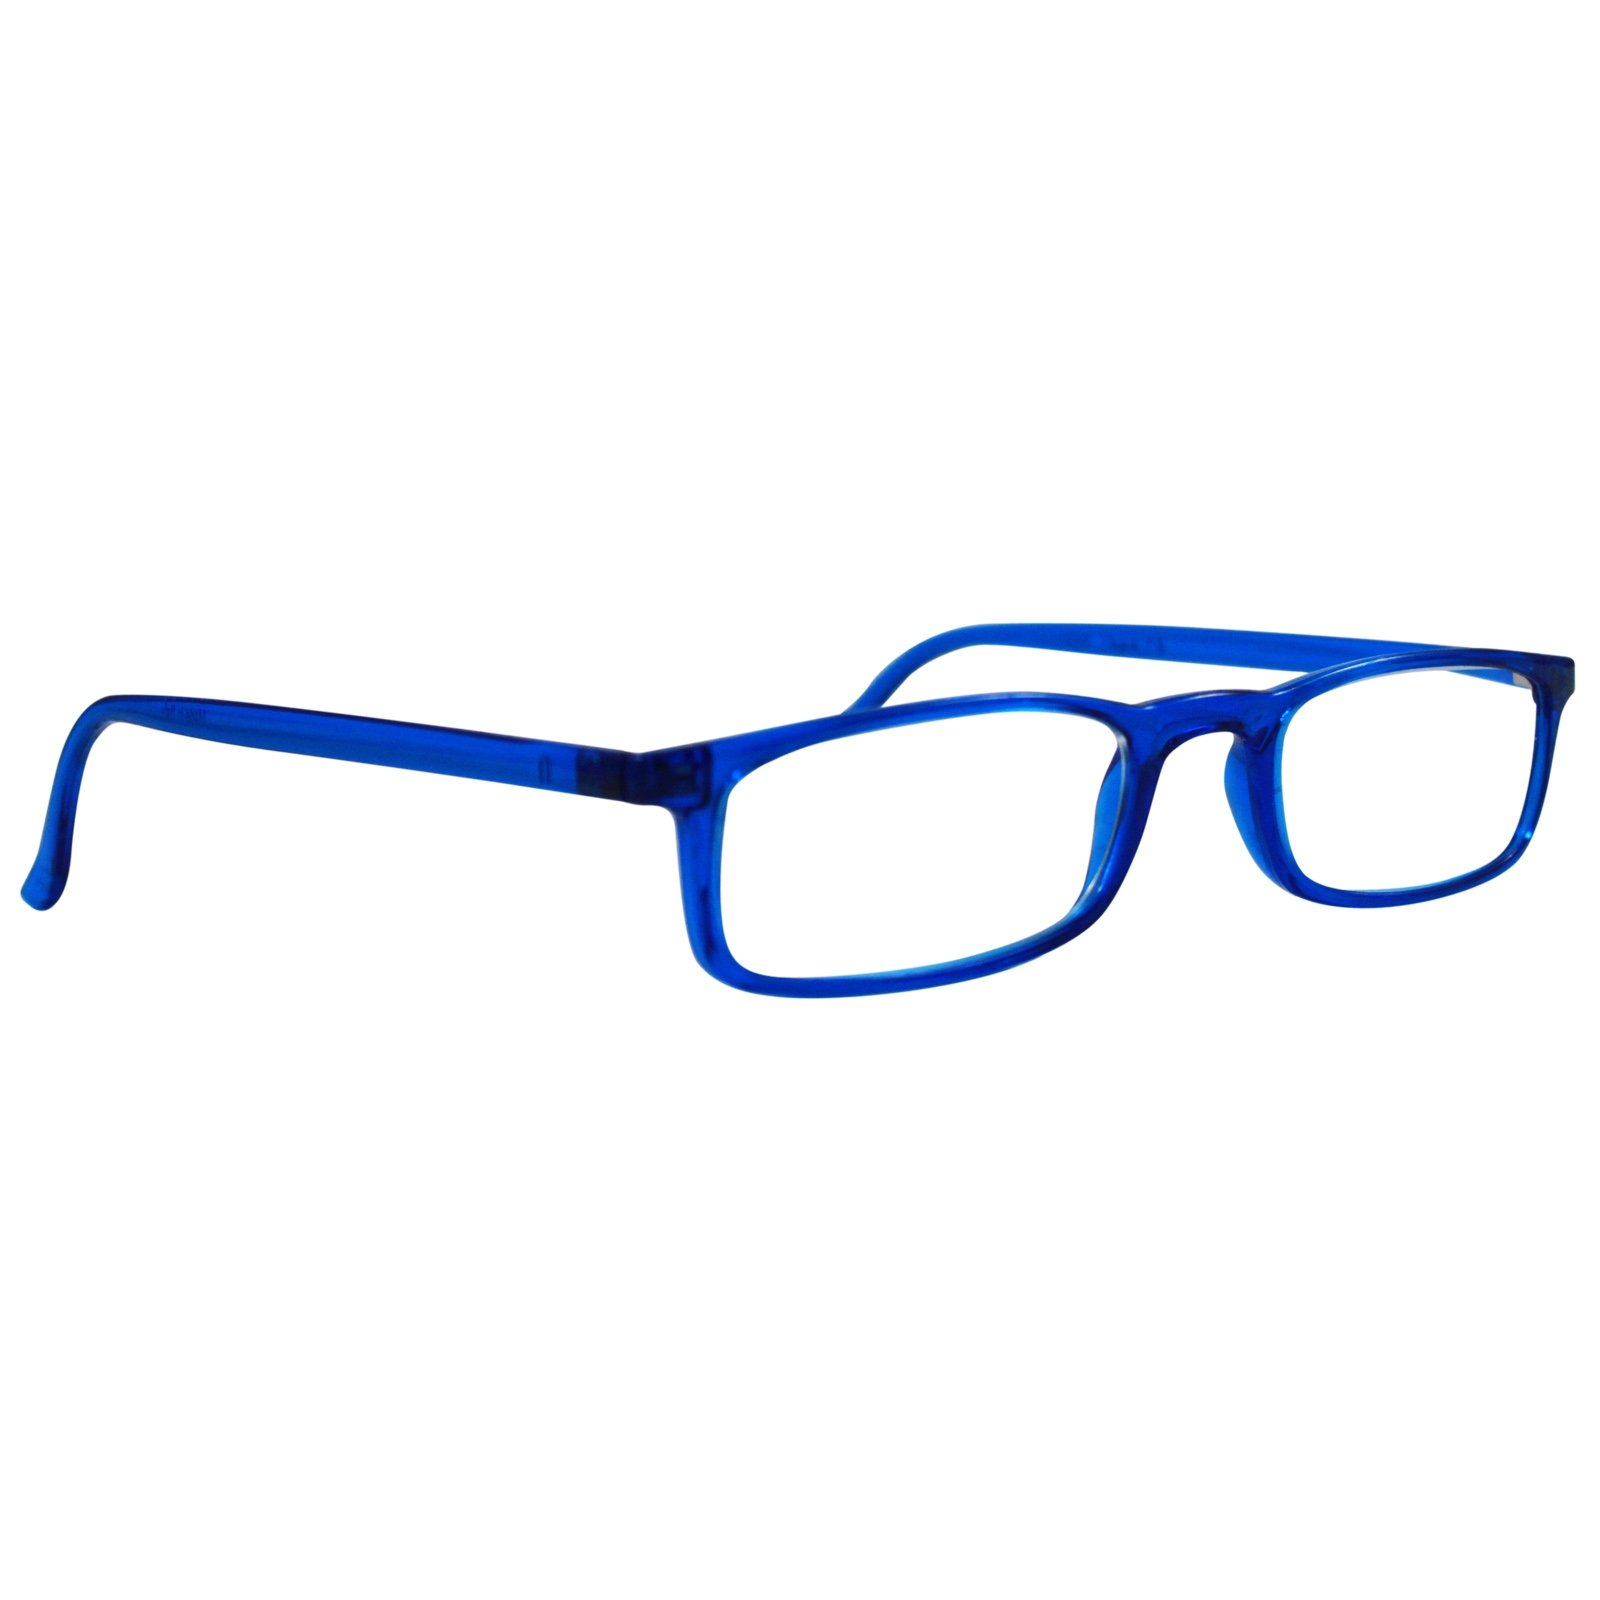 Reading Glasses Nannini Optics Vision Care Italian Fashion Readers - Blue 1.0